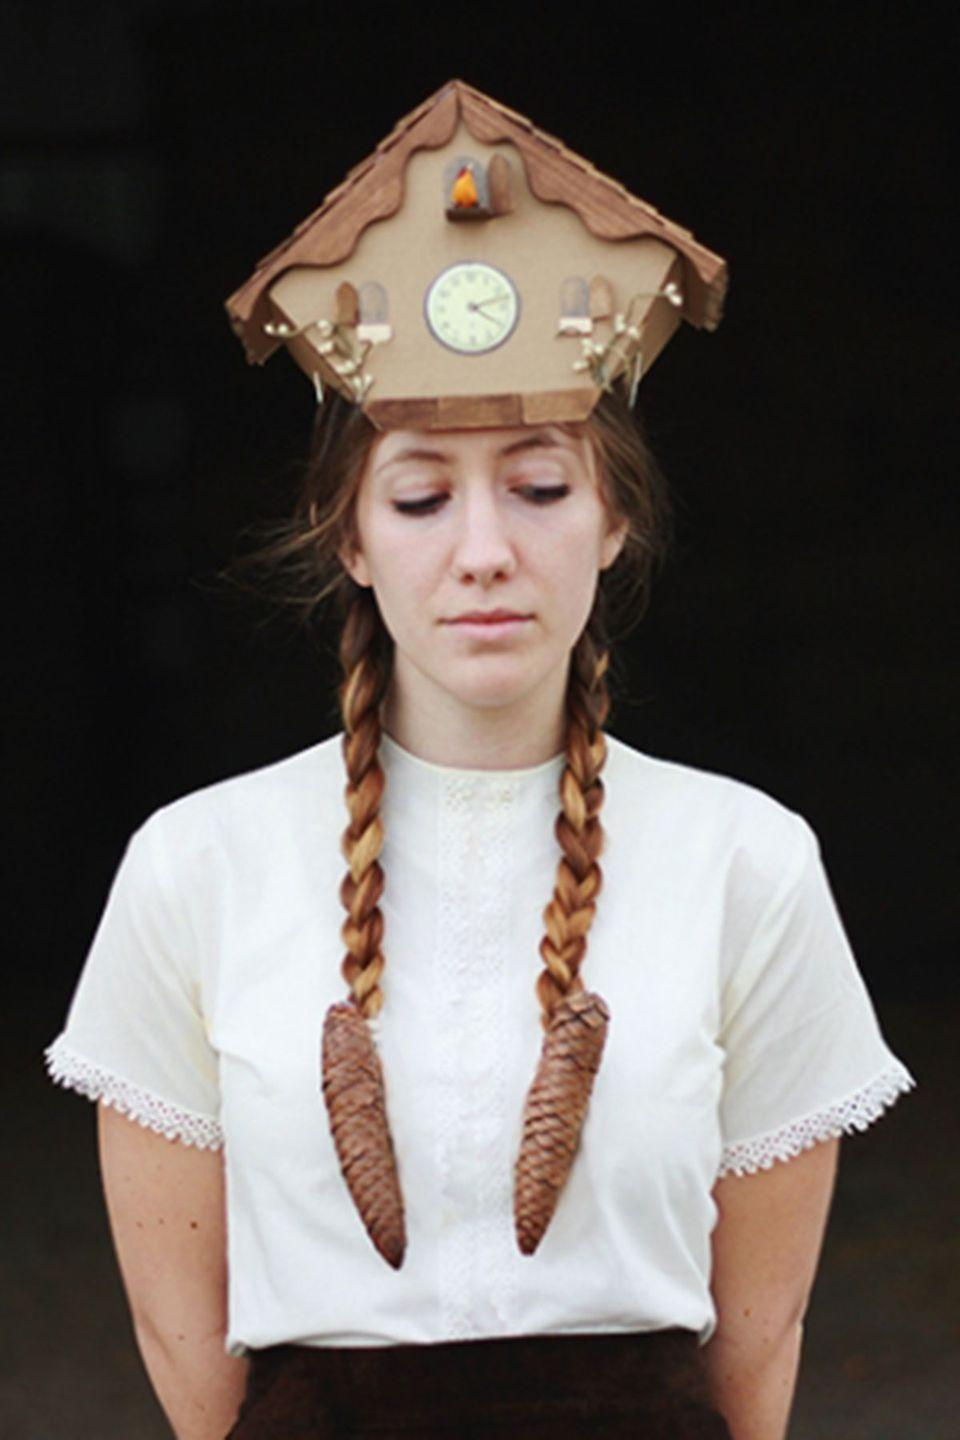 """<p>You're sure to be the only one at the Halloween party wearing this quirky costume—complete with pretty pendulum pinecone braids.<br></p><p><strong>Get the tutorial at <a href=""""http://themerrythought.com/diy/diy-cuckoo-clock-costume/"""" rel=""""nofollow noopener"""" target=""""_blank"""" data-ylk=""""slk:The Merrythought"""" class=""""link rapid-noclick-resp"""">The Merrythought</a>. </strong></p>"""